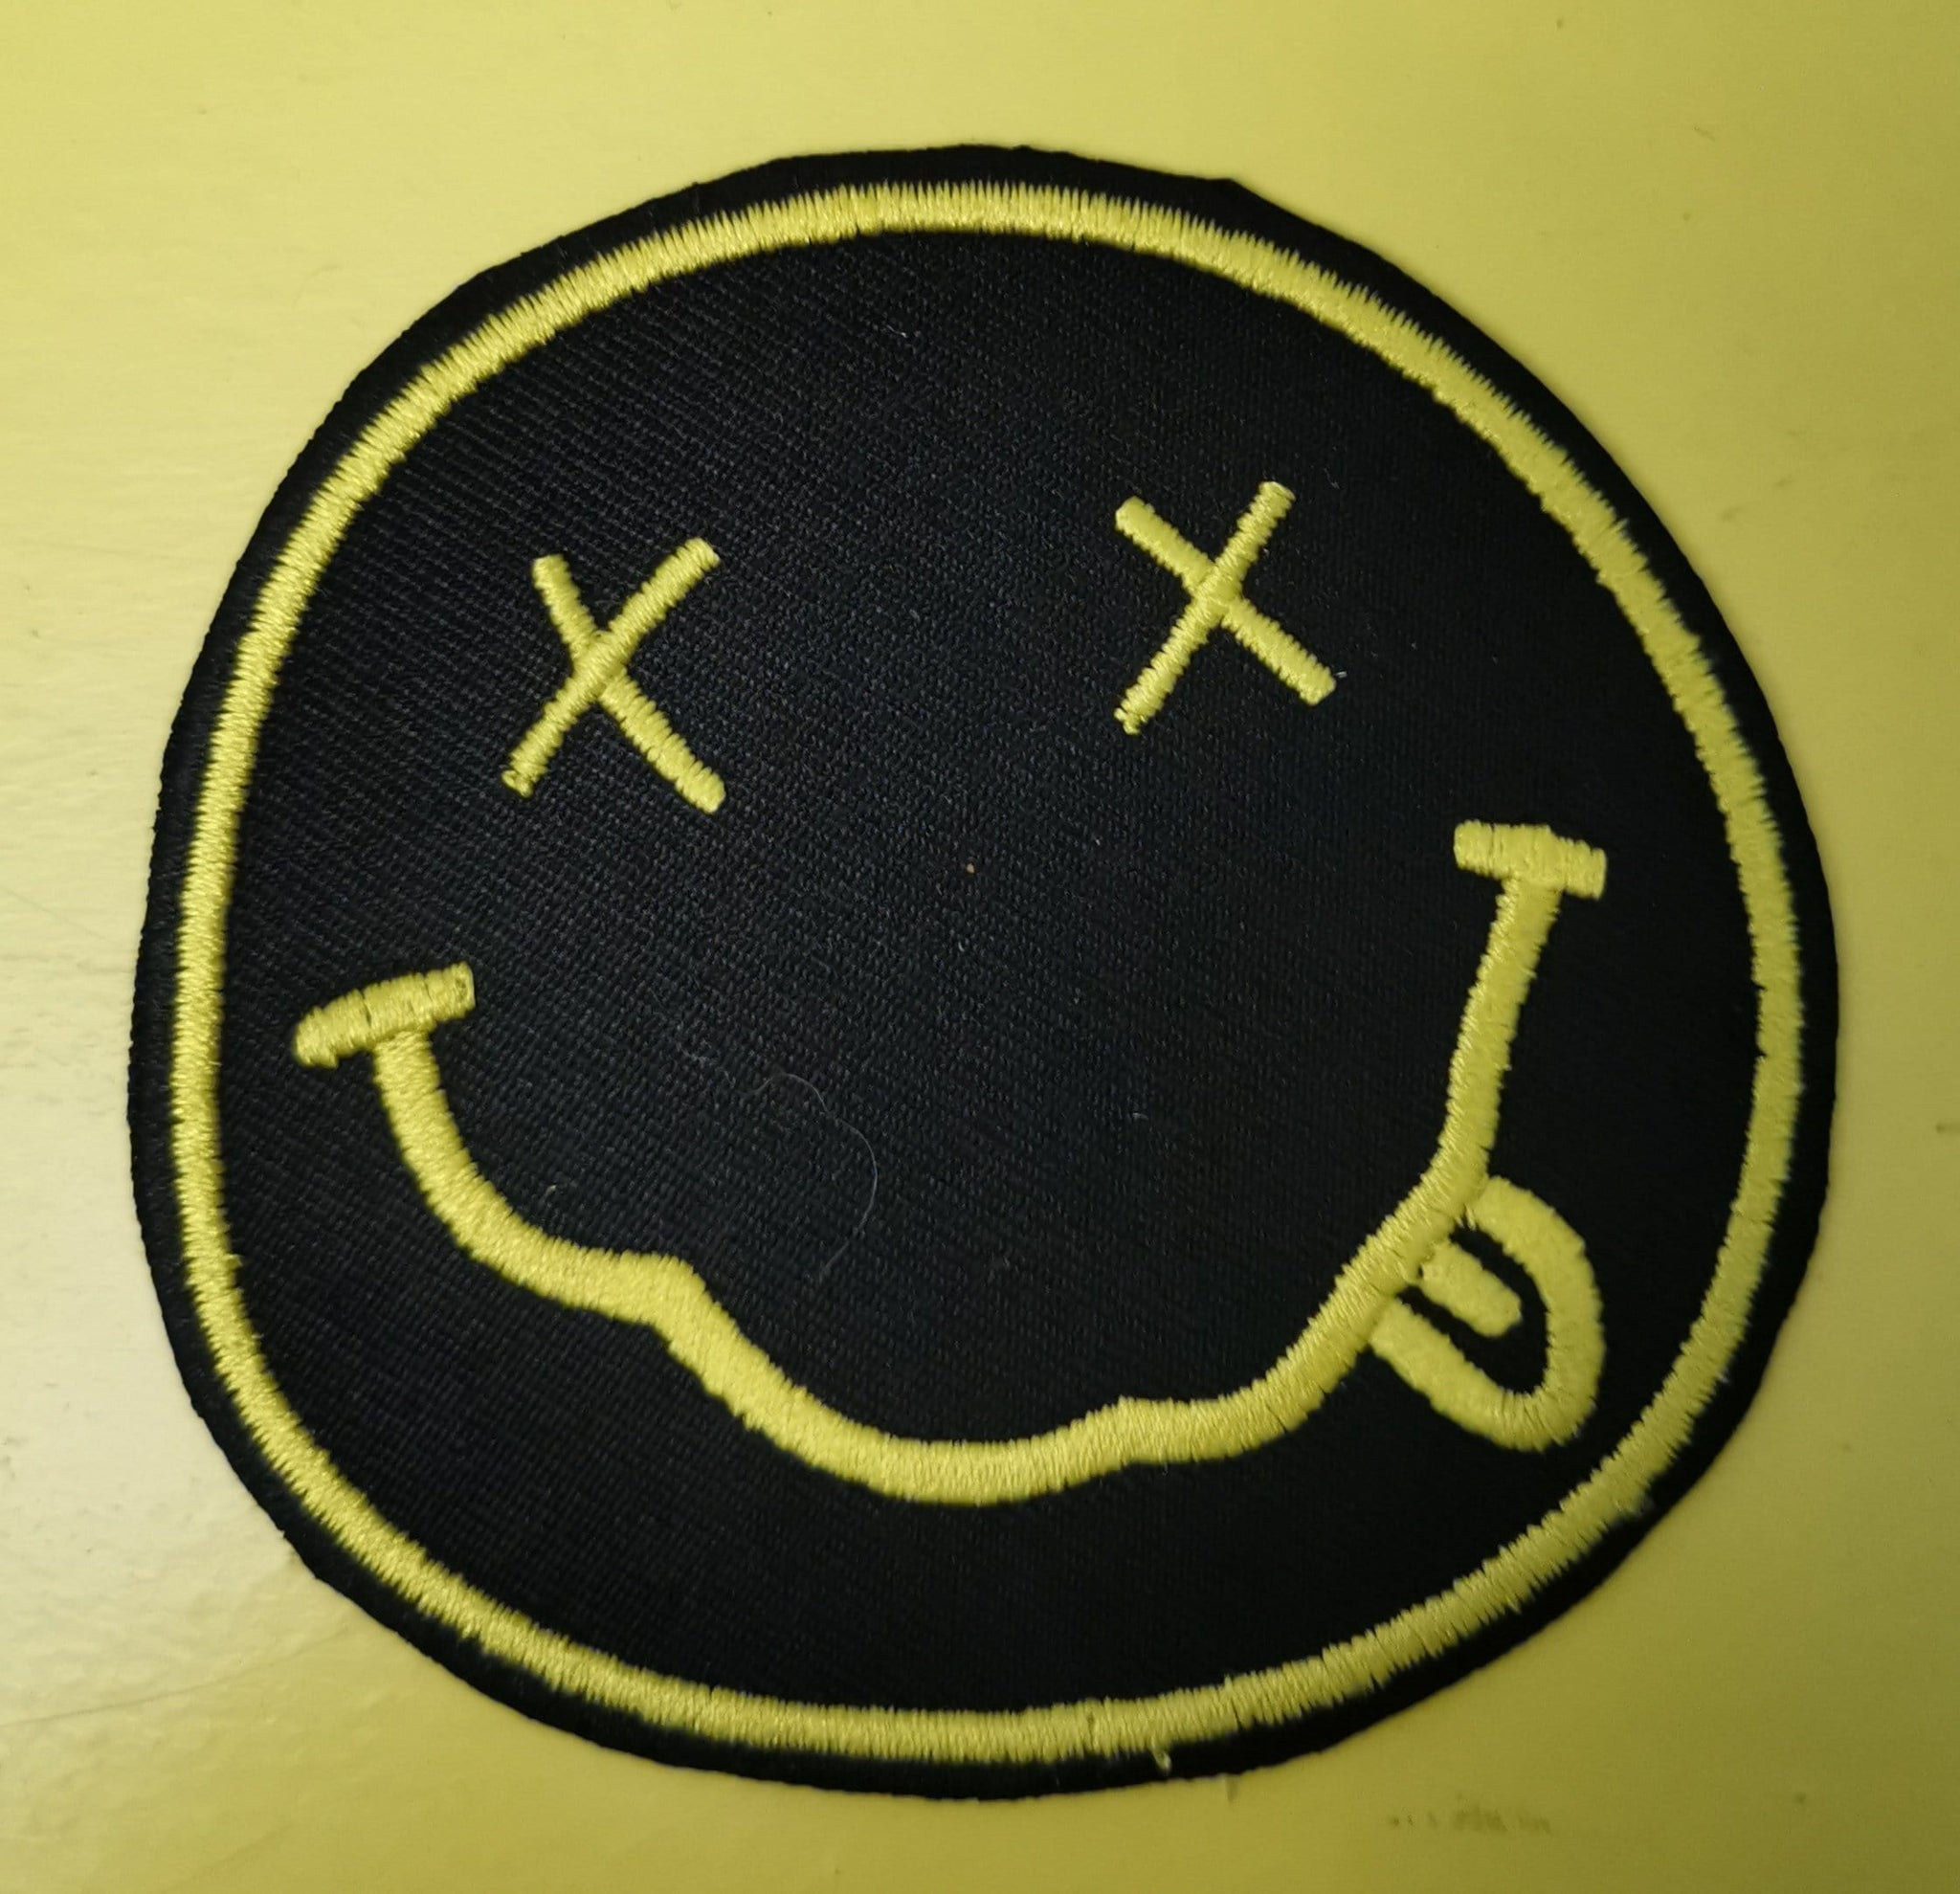 Nirvana round Black Embroidered Iron on Patch